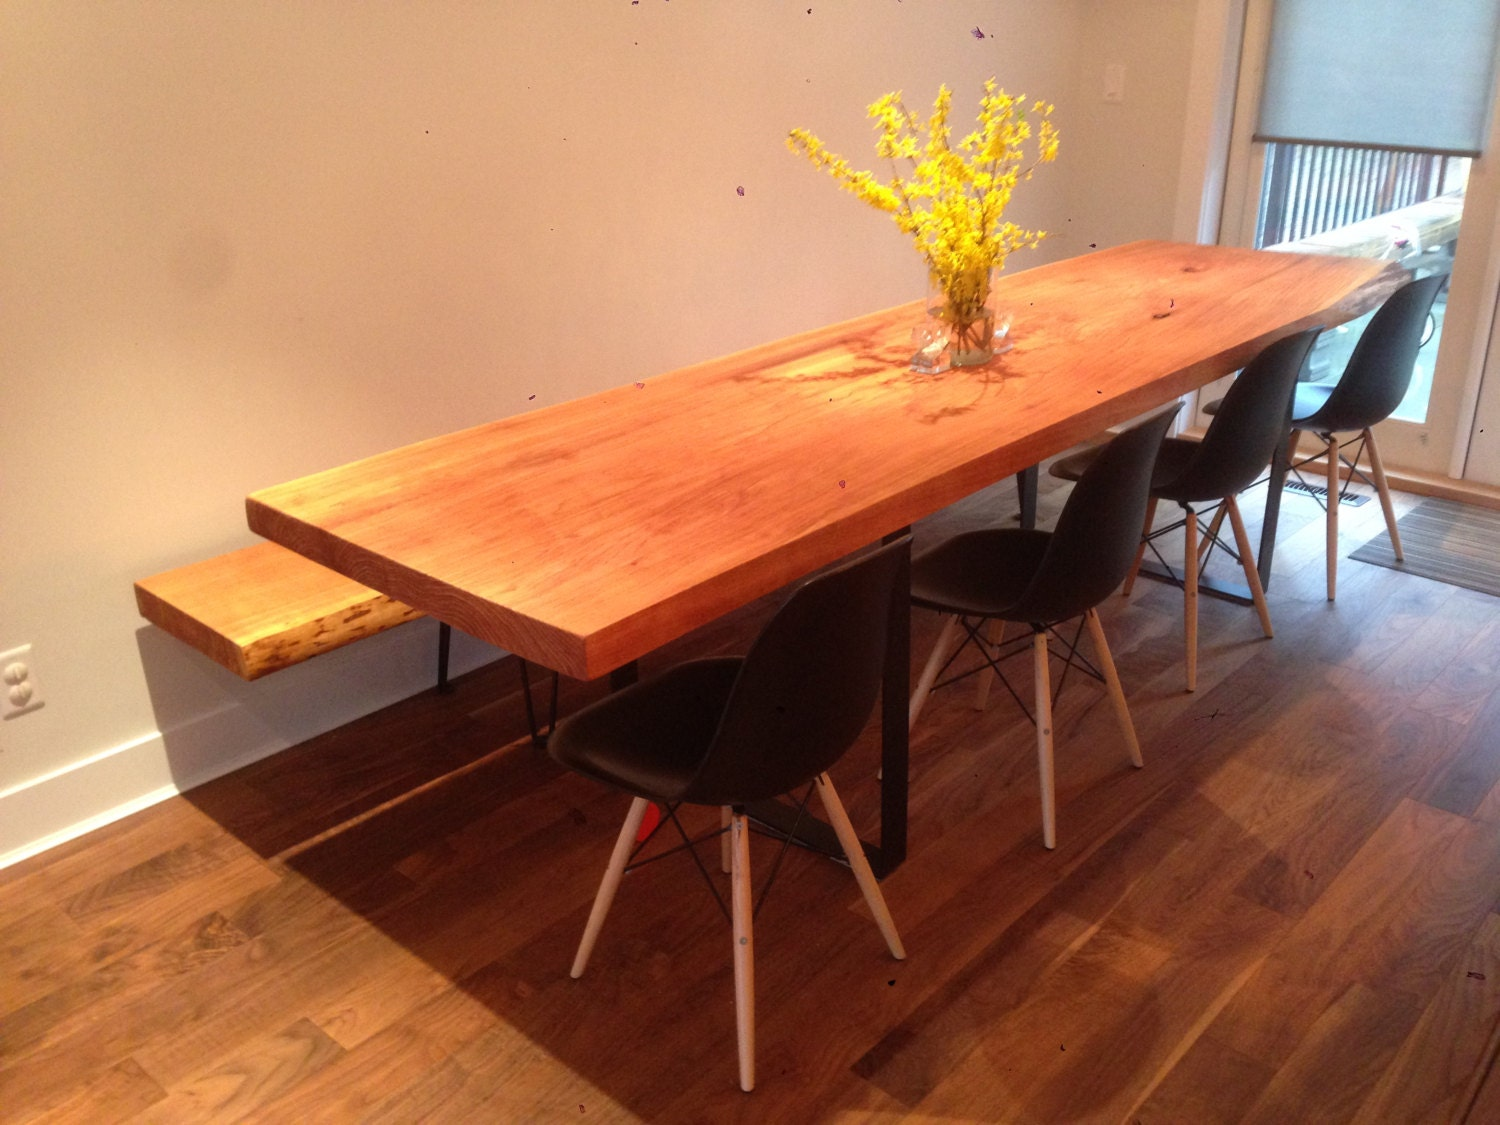 Rustic Wood Dining Table Live Edge Table Top by COOLWOODBC  : ilfullxfull605097216giog from etsy.com size 1500 x 1125 jpeg 283kB